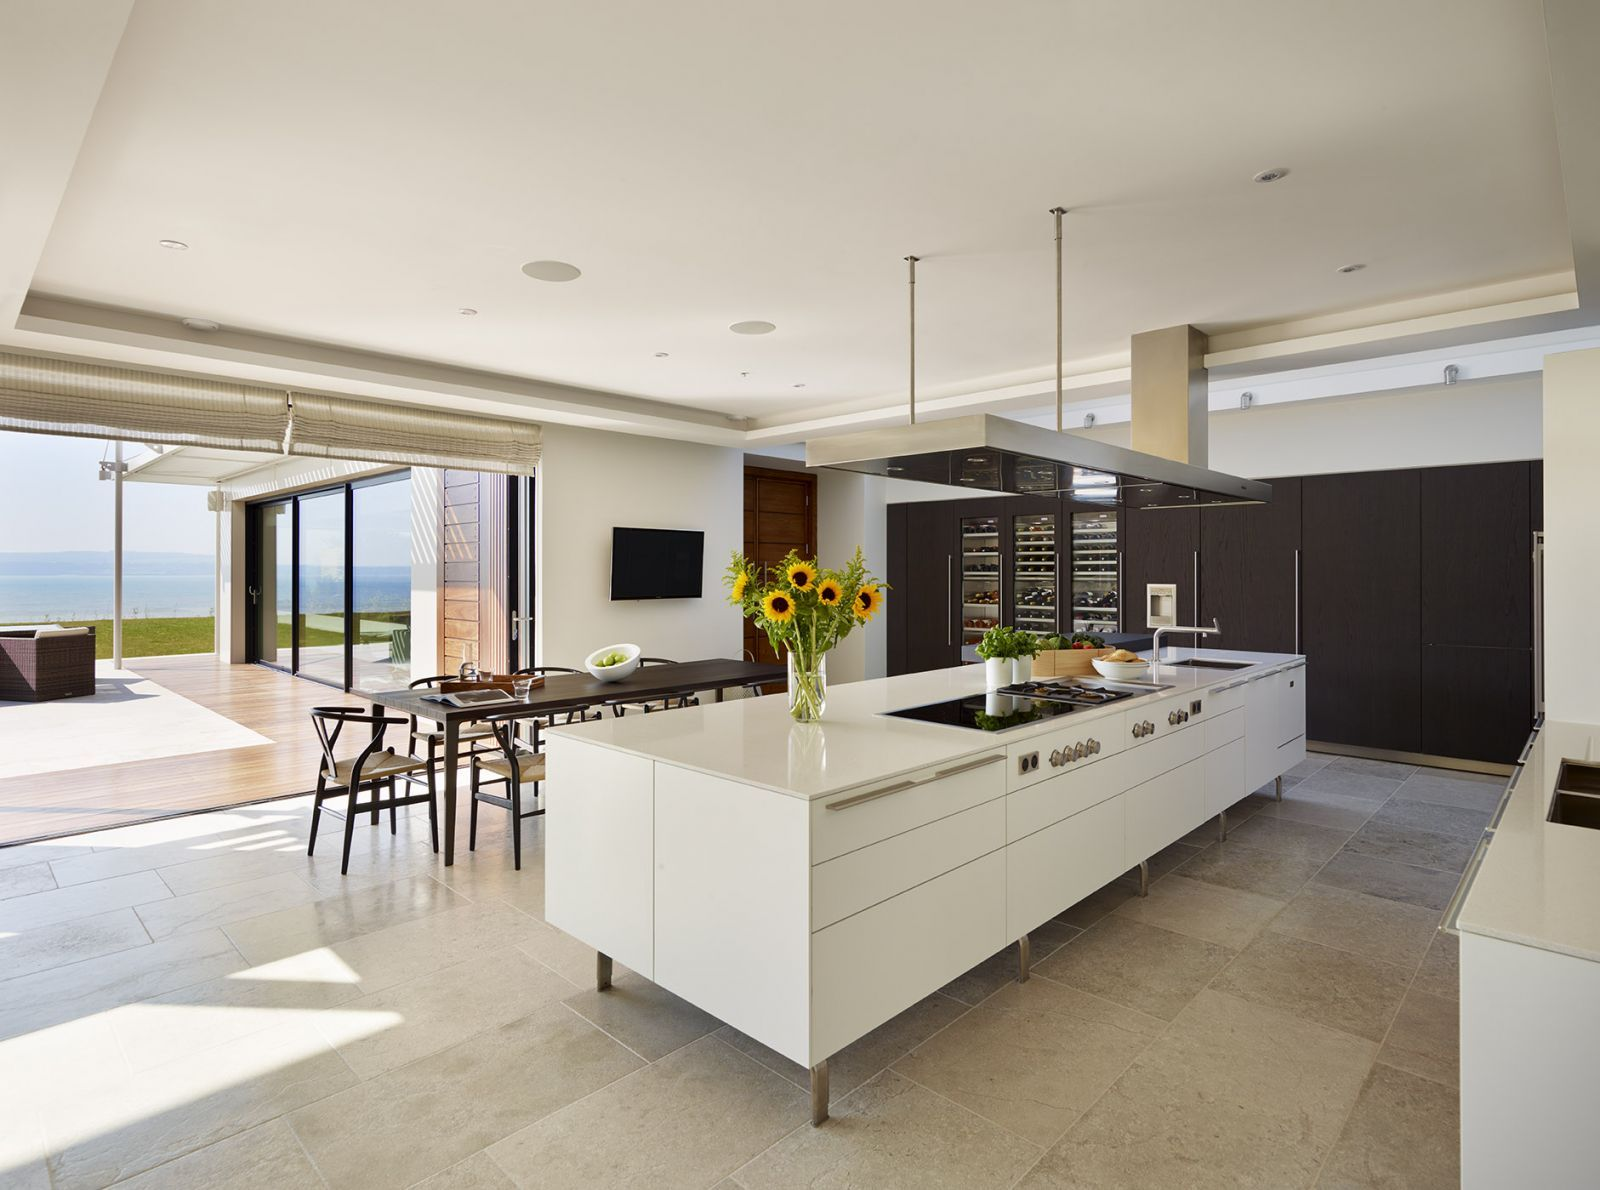 bulthaup b3 Kitchen Project with sea views - designed by Sapphire ...